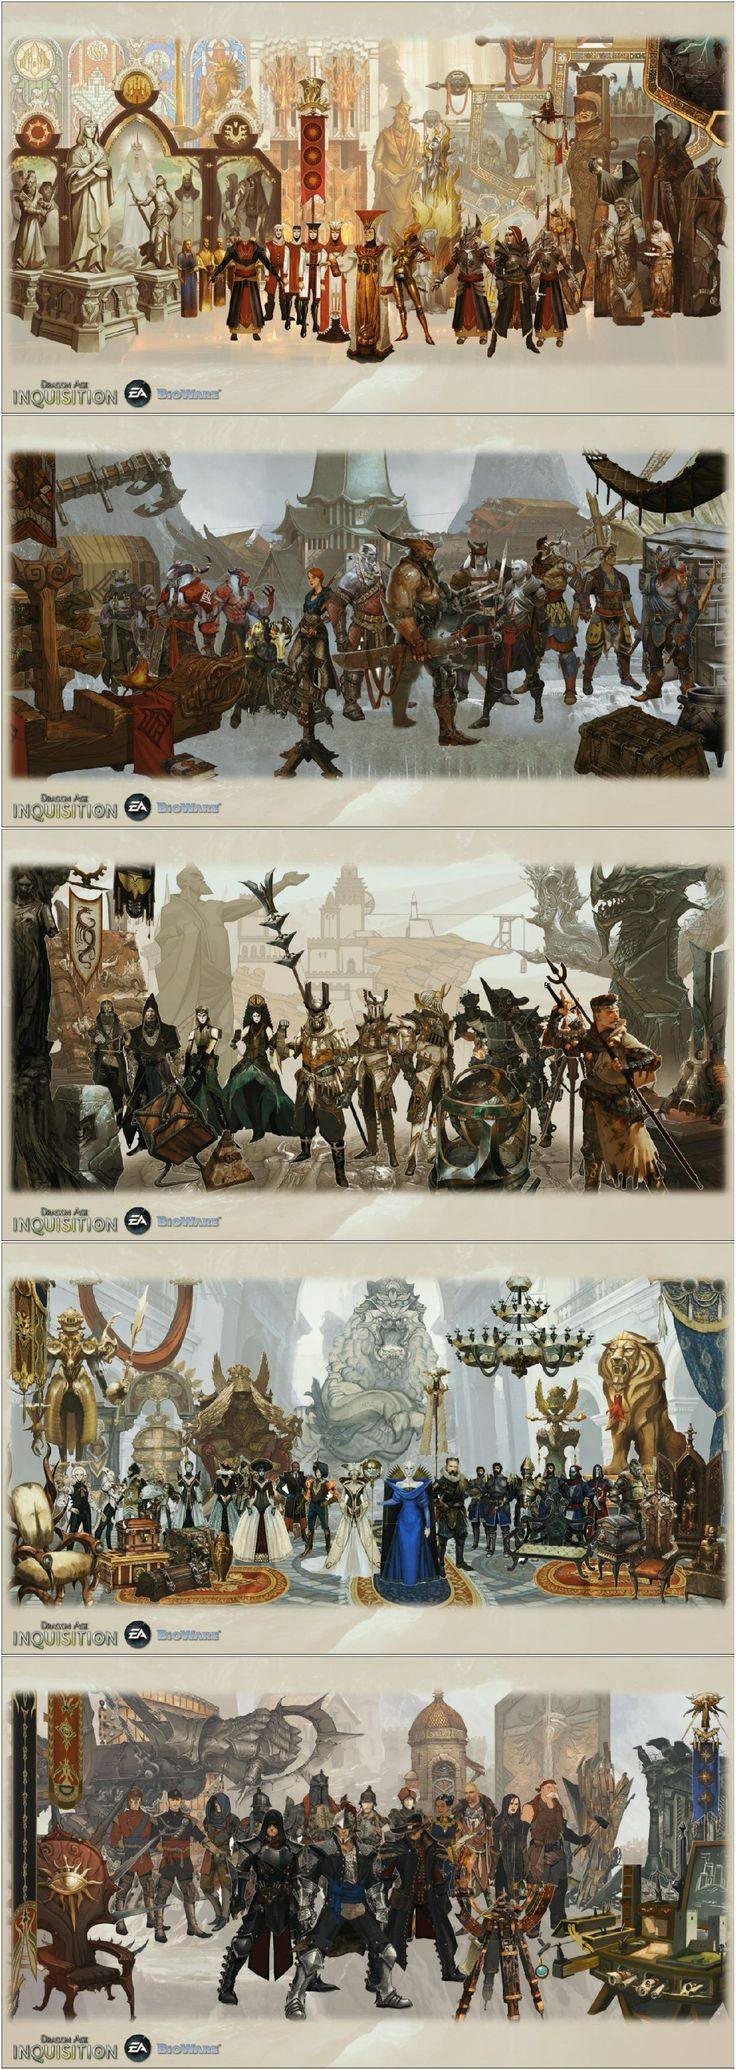 Dragon Age concept pieces which show early designs as well as faction colors and aesthetics.